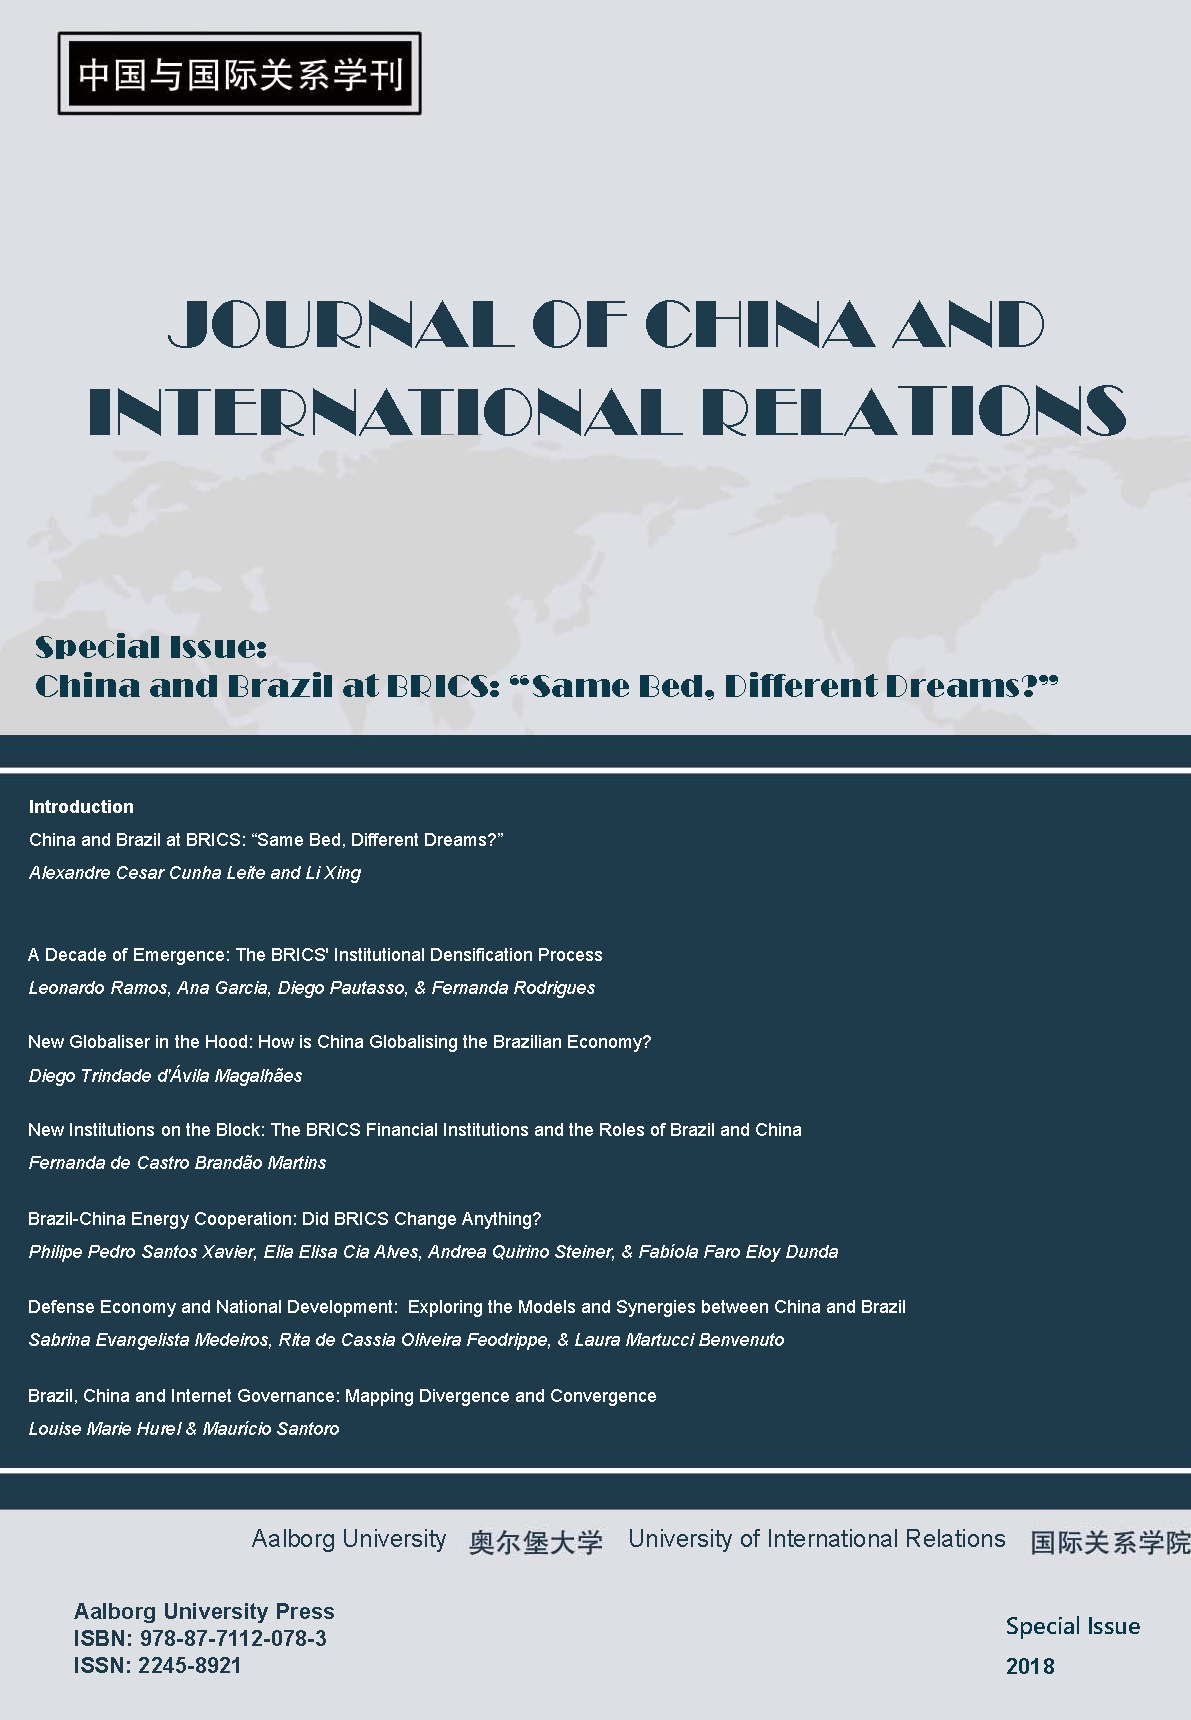 Journal of China and International Relations Special Issue 2018 Cover and contents